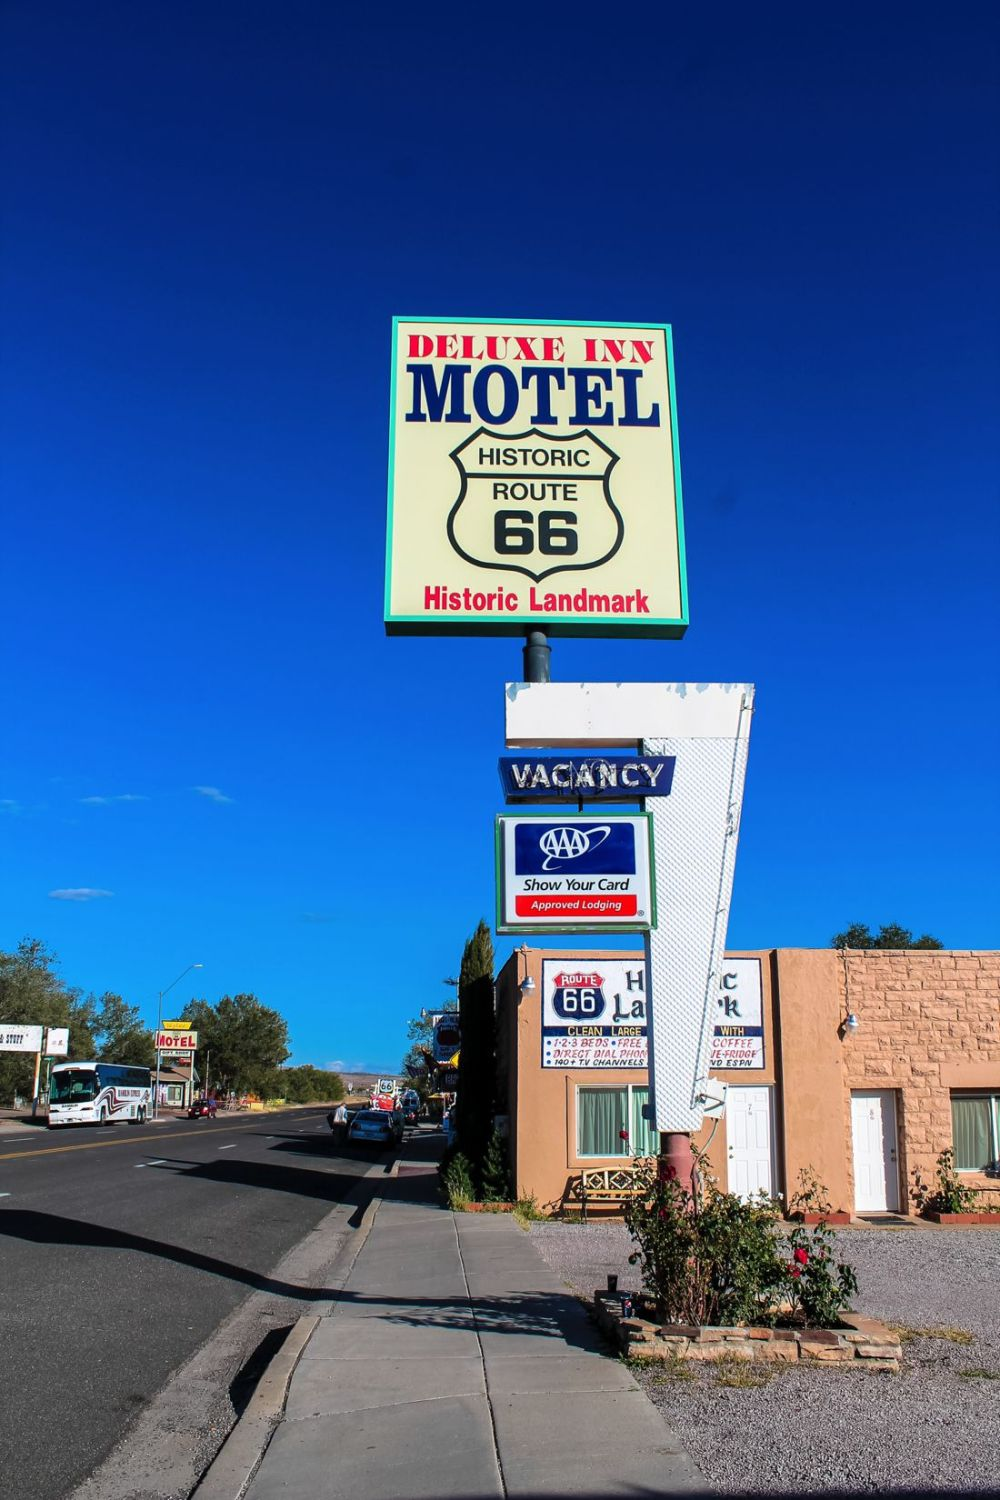 Road Trip USA! The legendary Route 66 and Road Kill Cafe! (22)